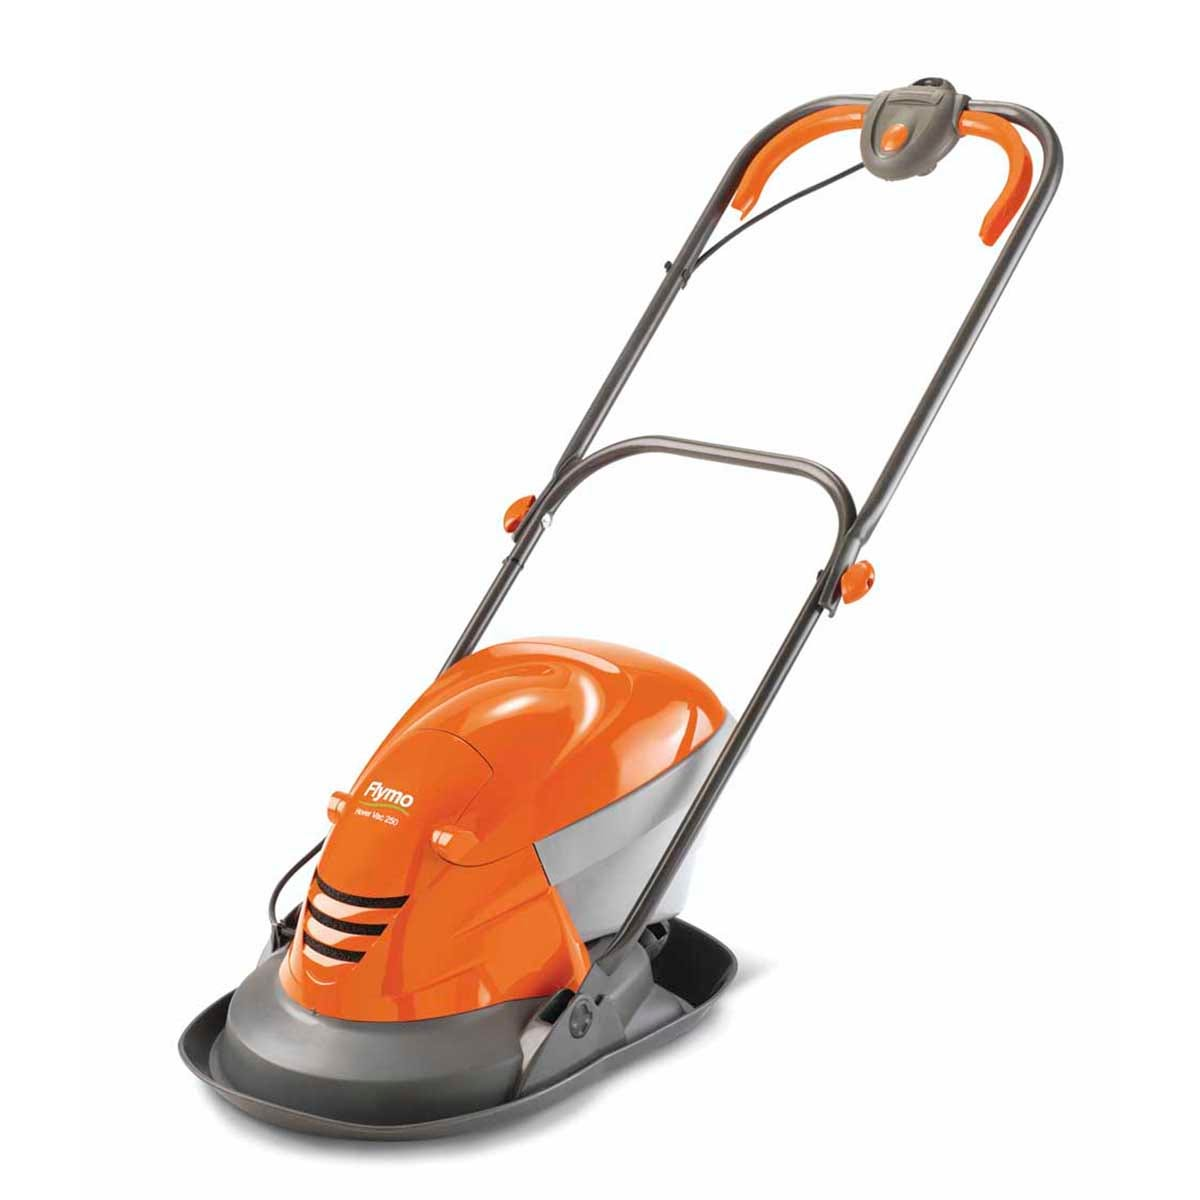 Flymo Hover Vac 250 Lawn Mower